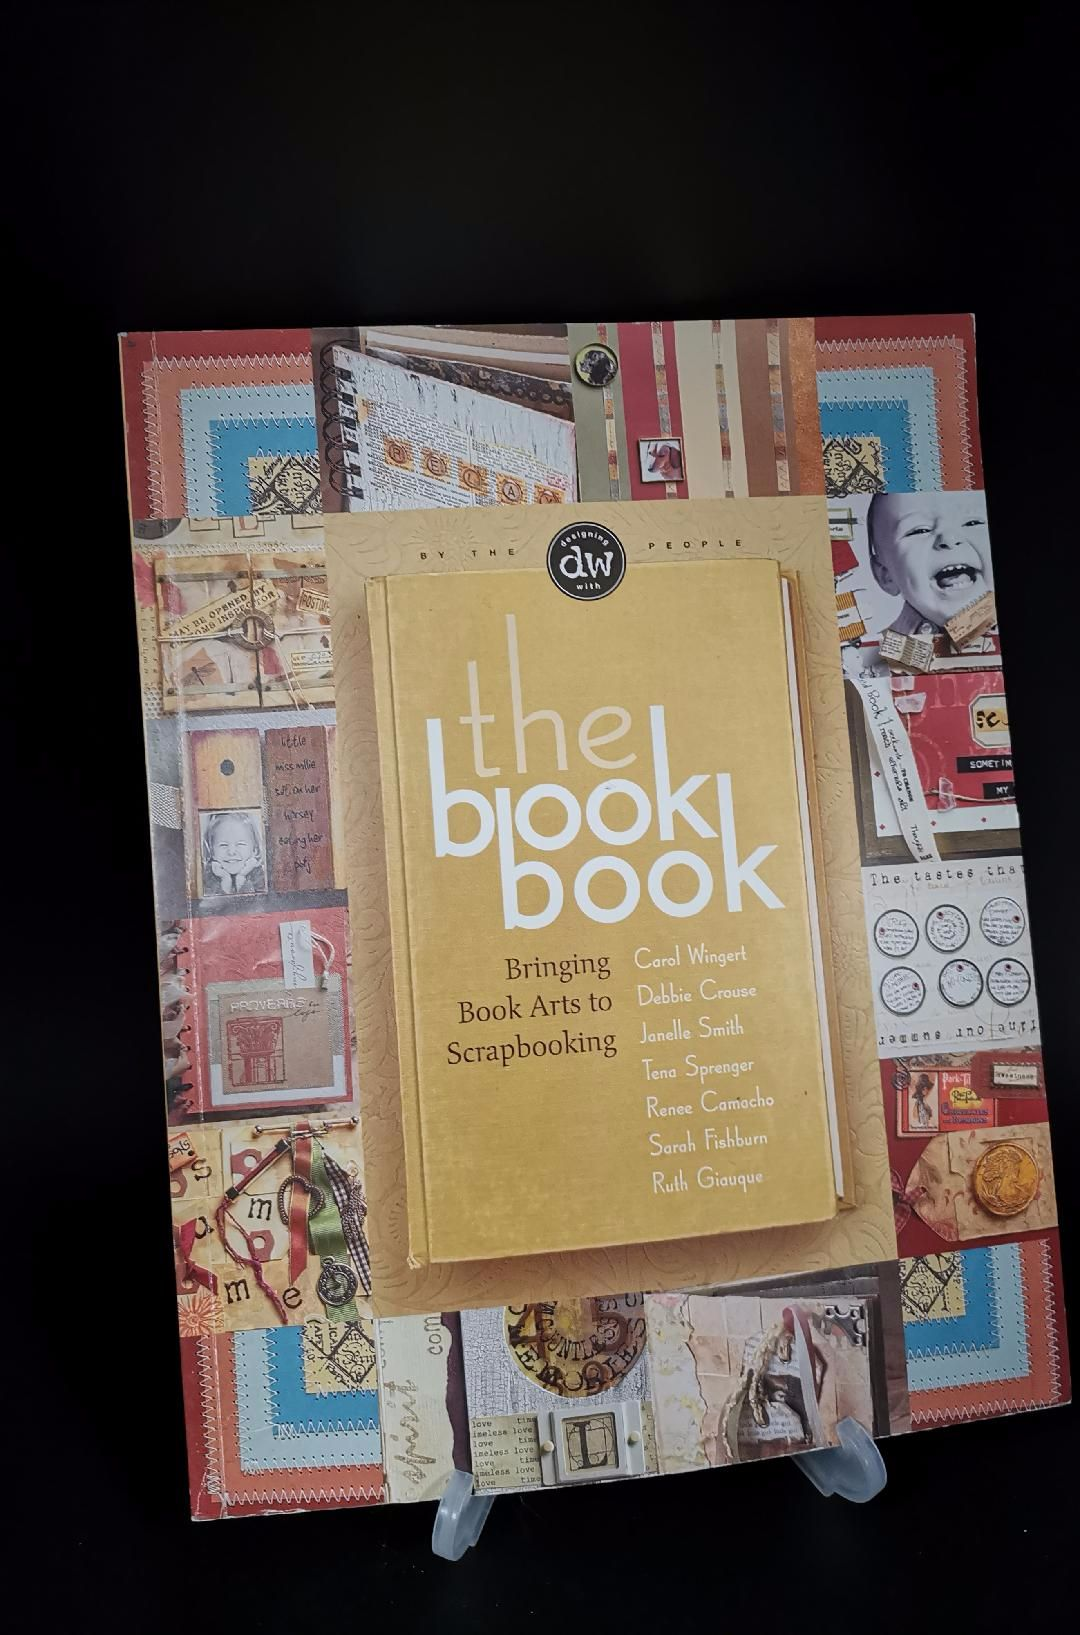 The book book : Bringing Book Artists to Scrapbooking